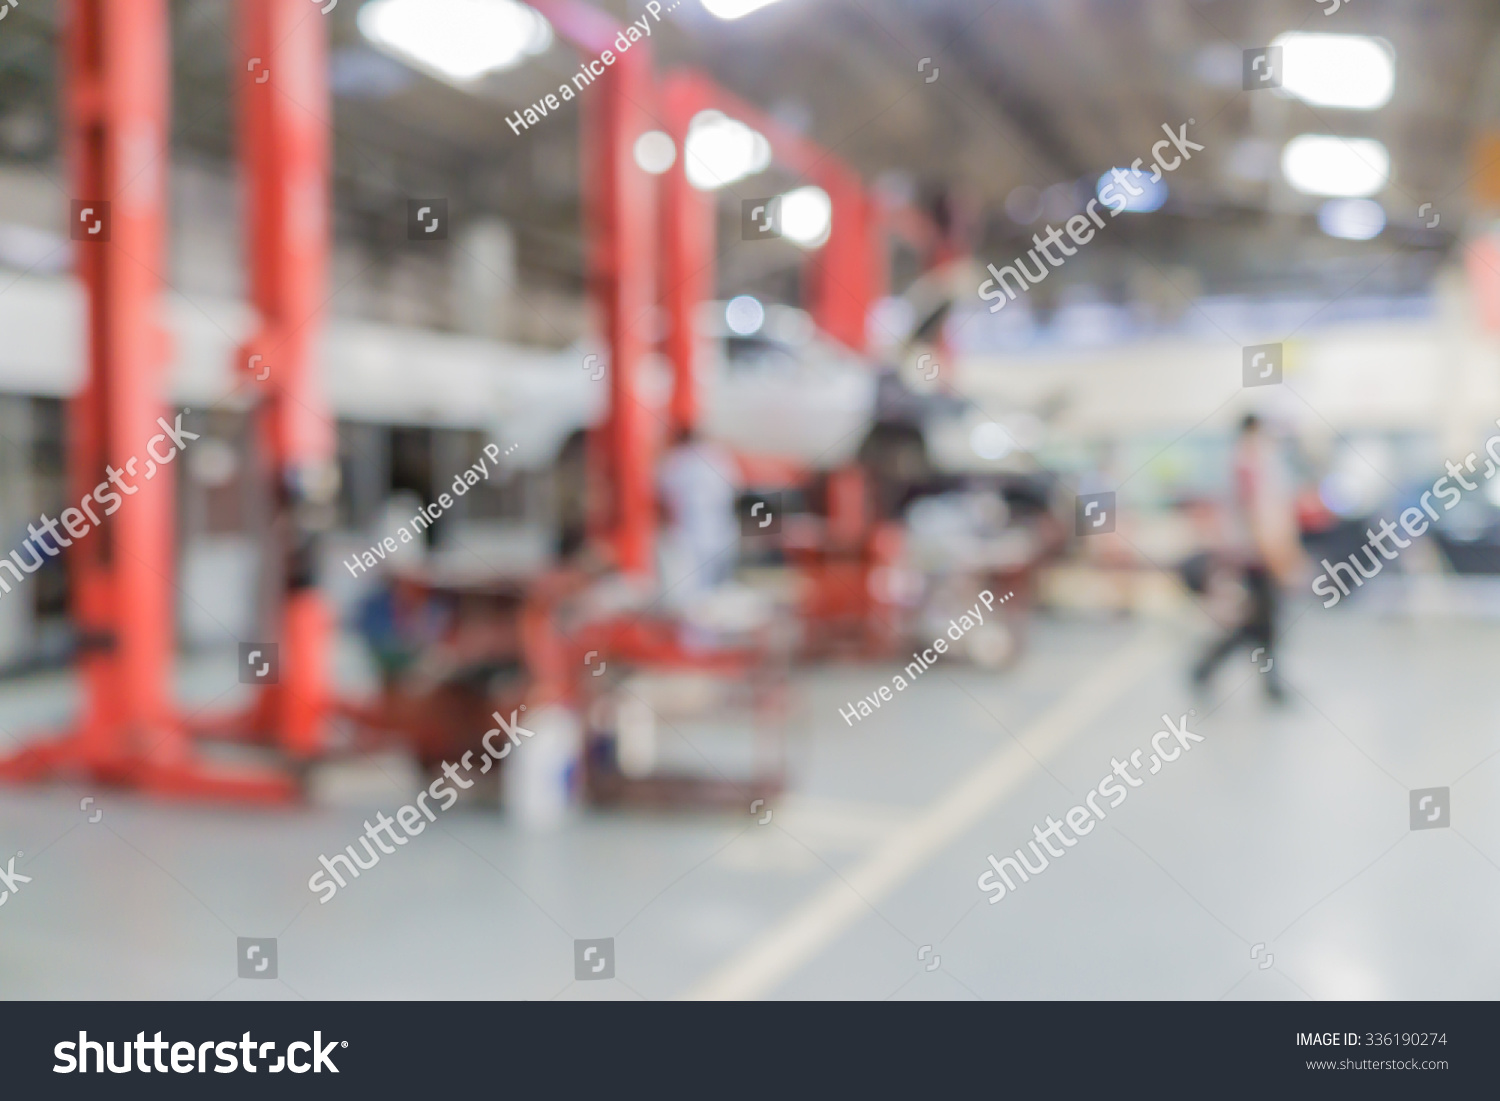 blurred of car technician repairing the car in garage background interior of a car repair. Black Bedroom Furniture Sets. Home Design Ideas